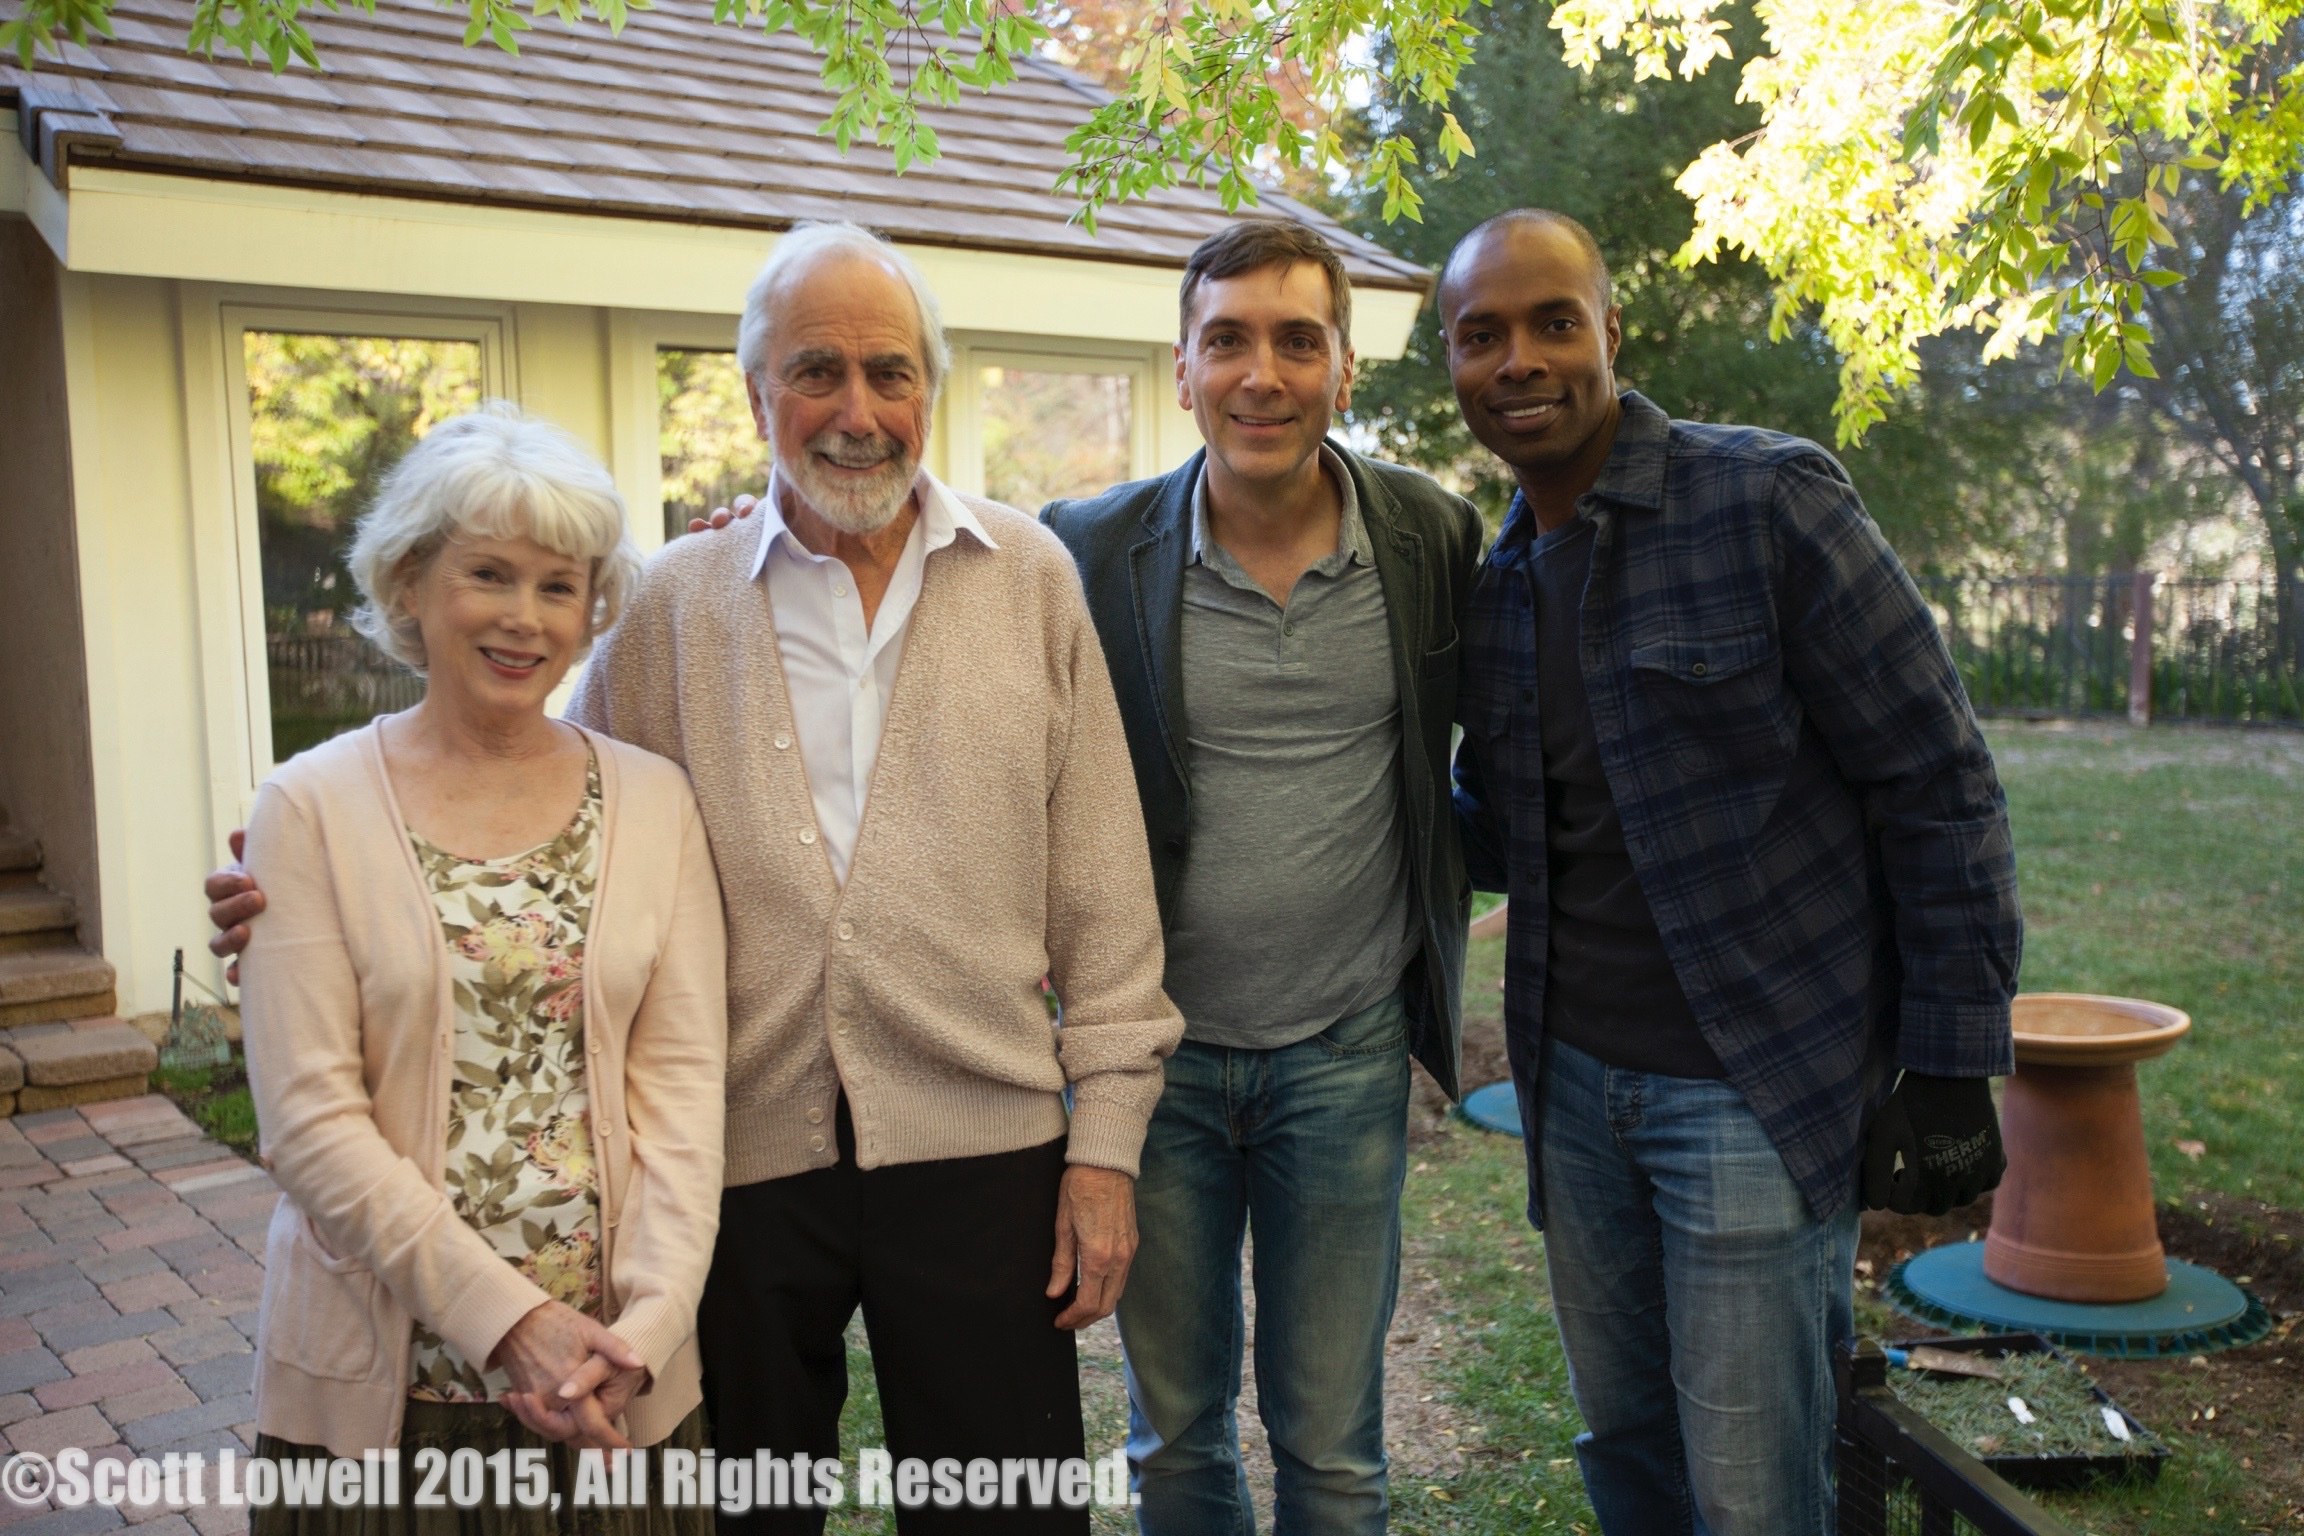 """11/11/15 Arriving at Sarah & Mel's Home Scene. L to R: Julia Duffy (""""Sarah""""), Jerry Lacey (""""Mel""""), Scott Lowell, Jacques C. Smith (""""Charles"""")"""